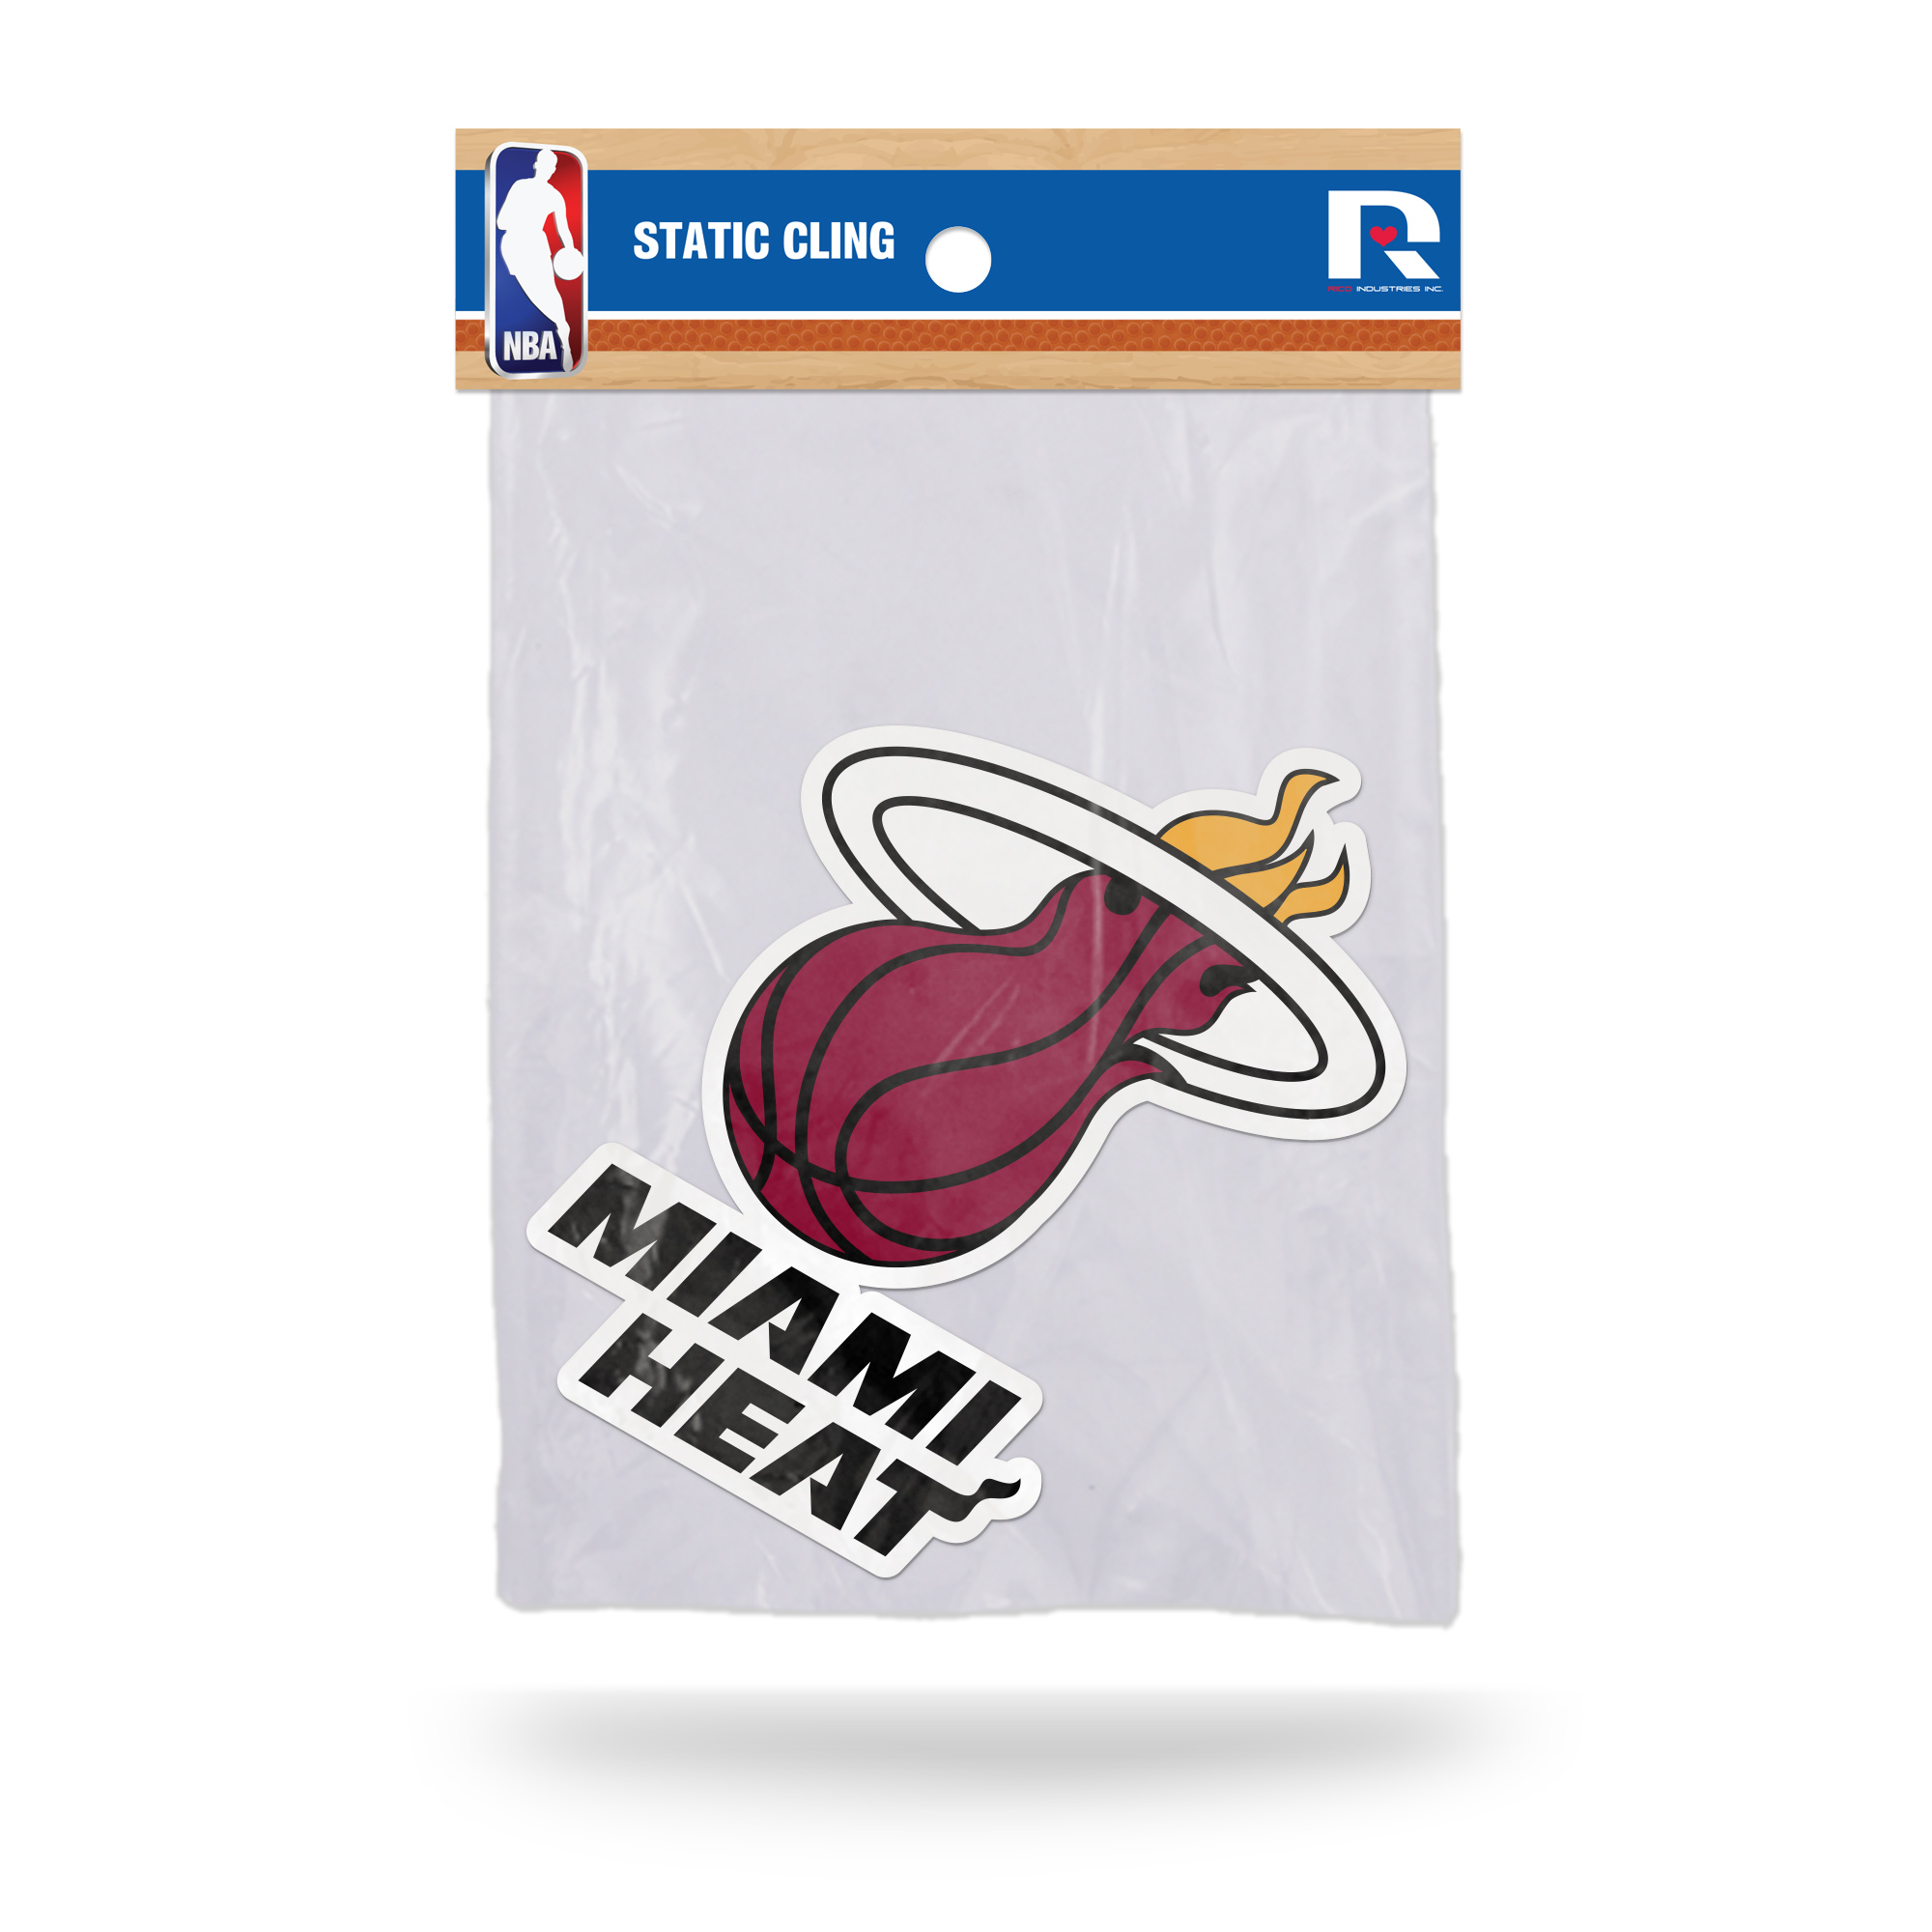 Miami Heat Official NBA 5 inch  Car Window Cling Decal by Rico